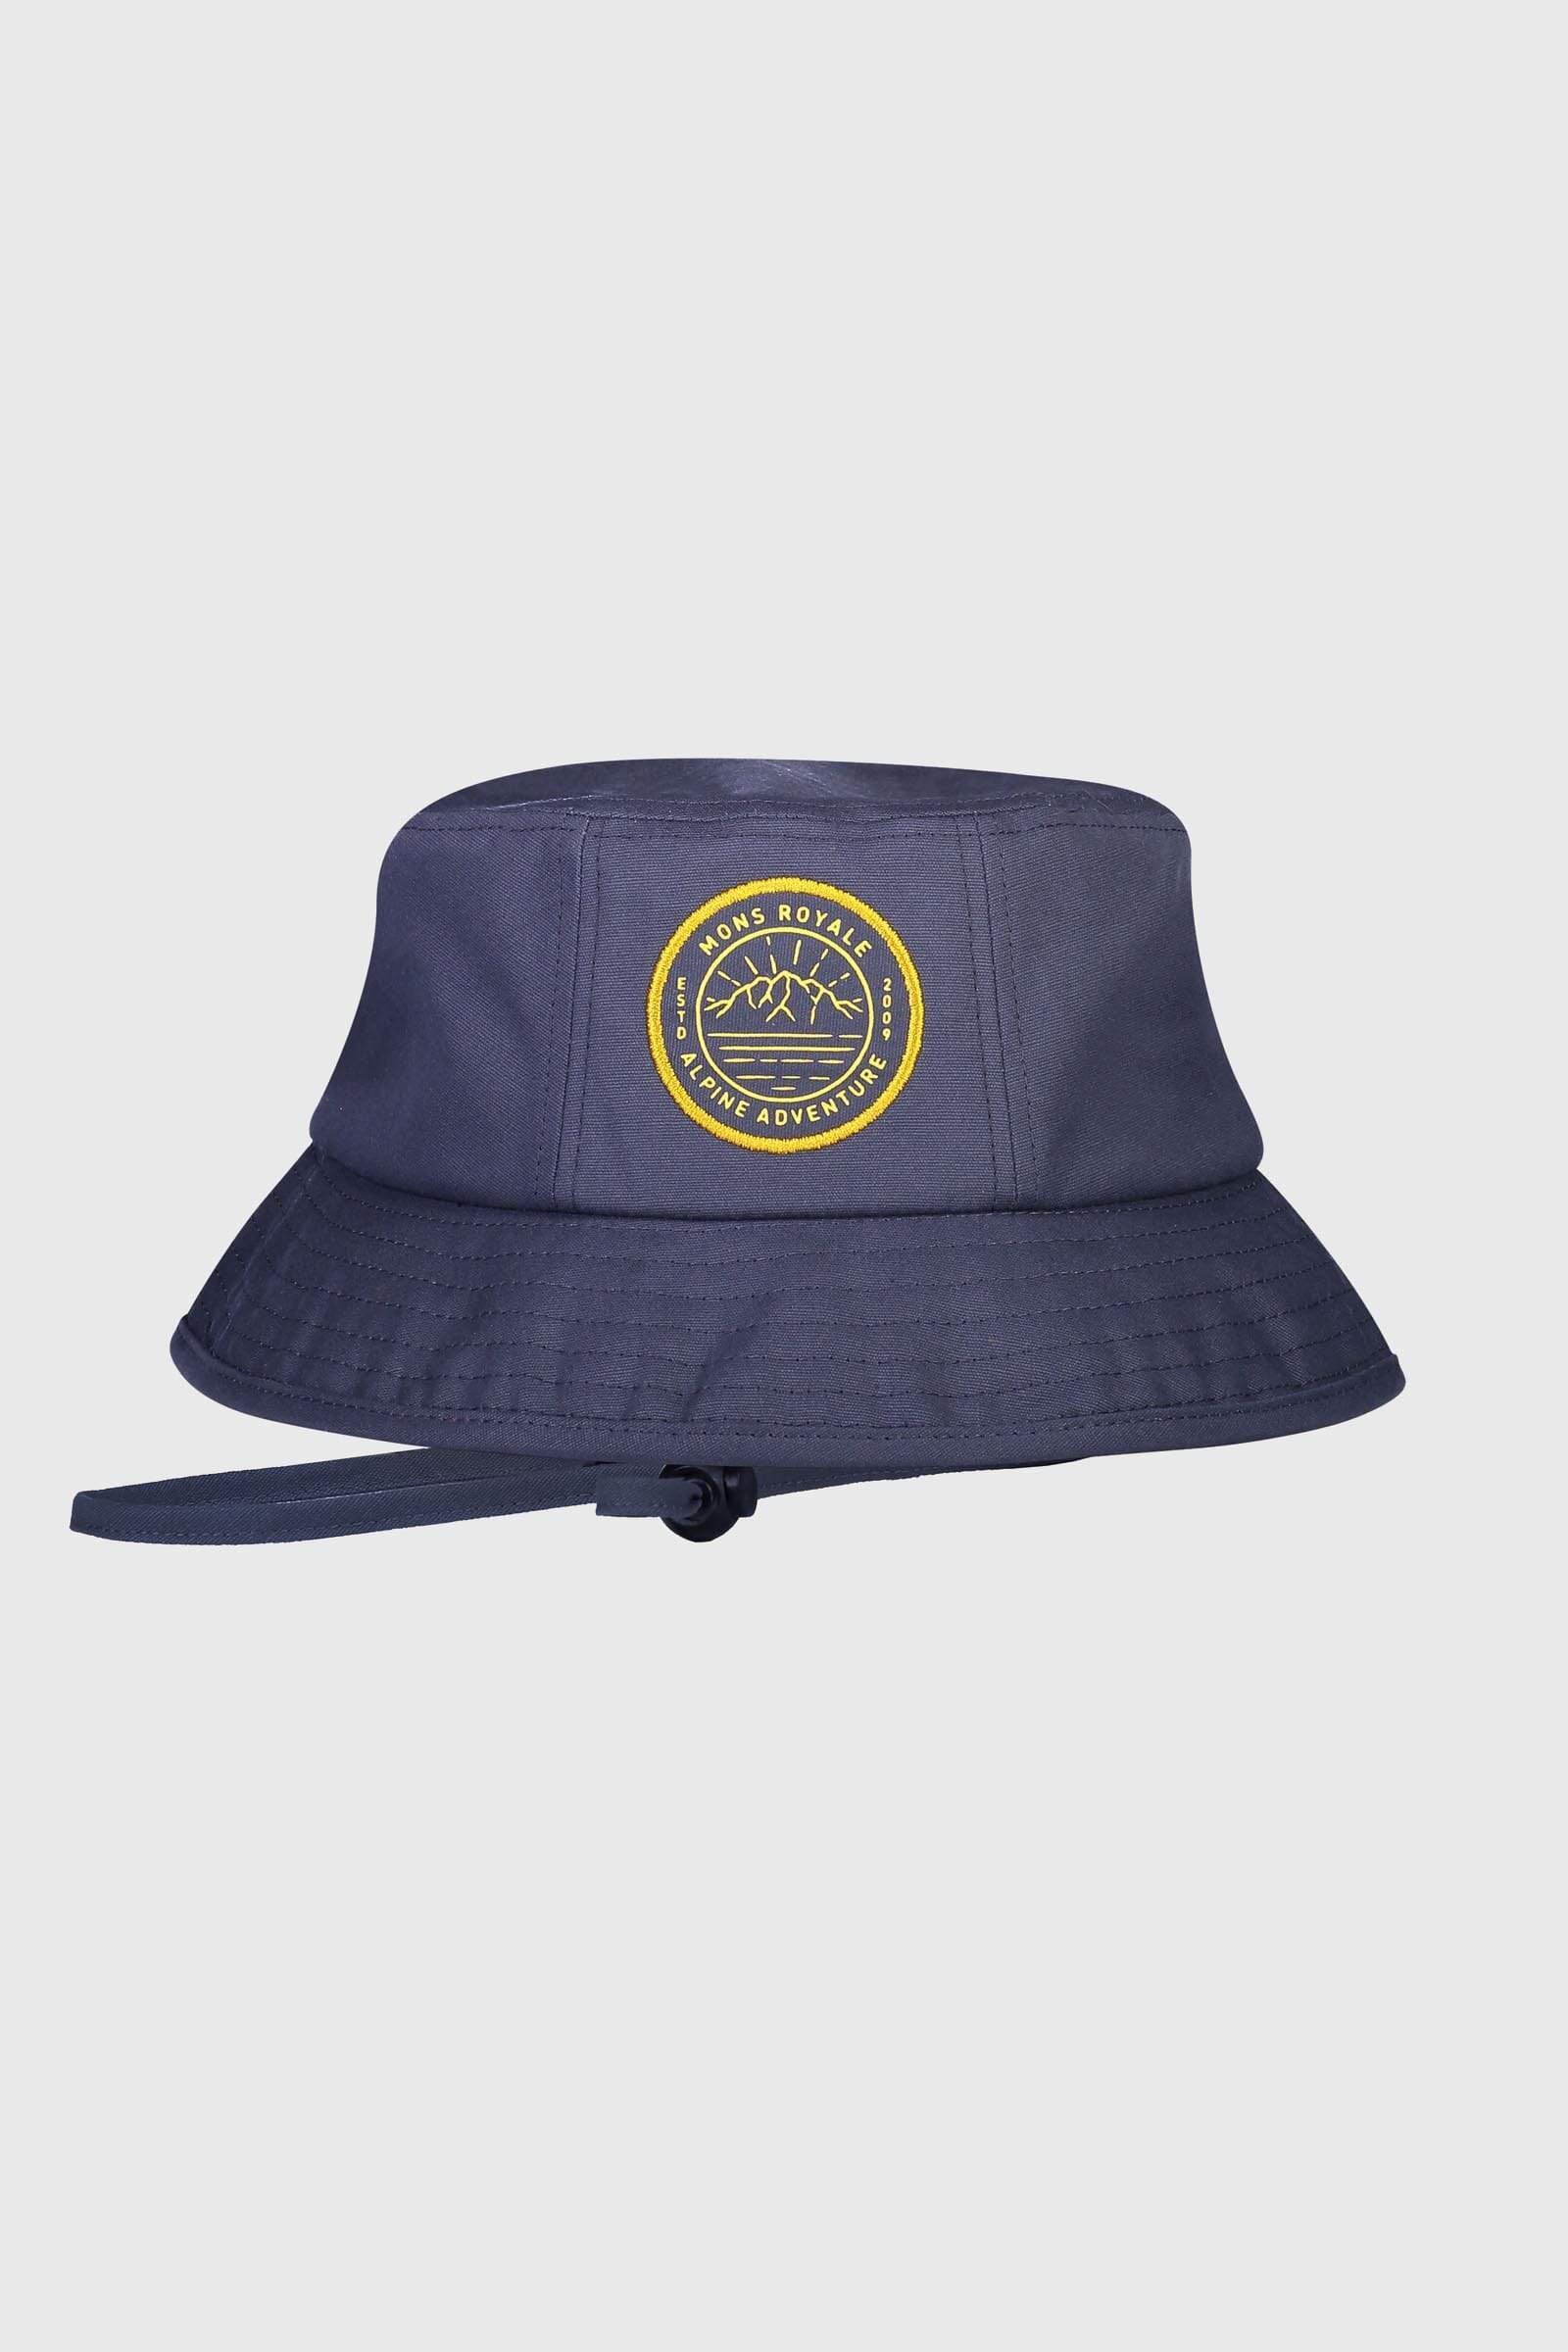 Beattie Bucket Hat - 9 Iron